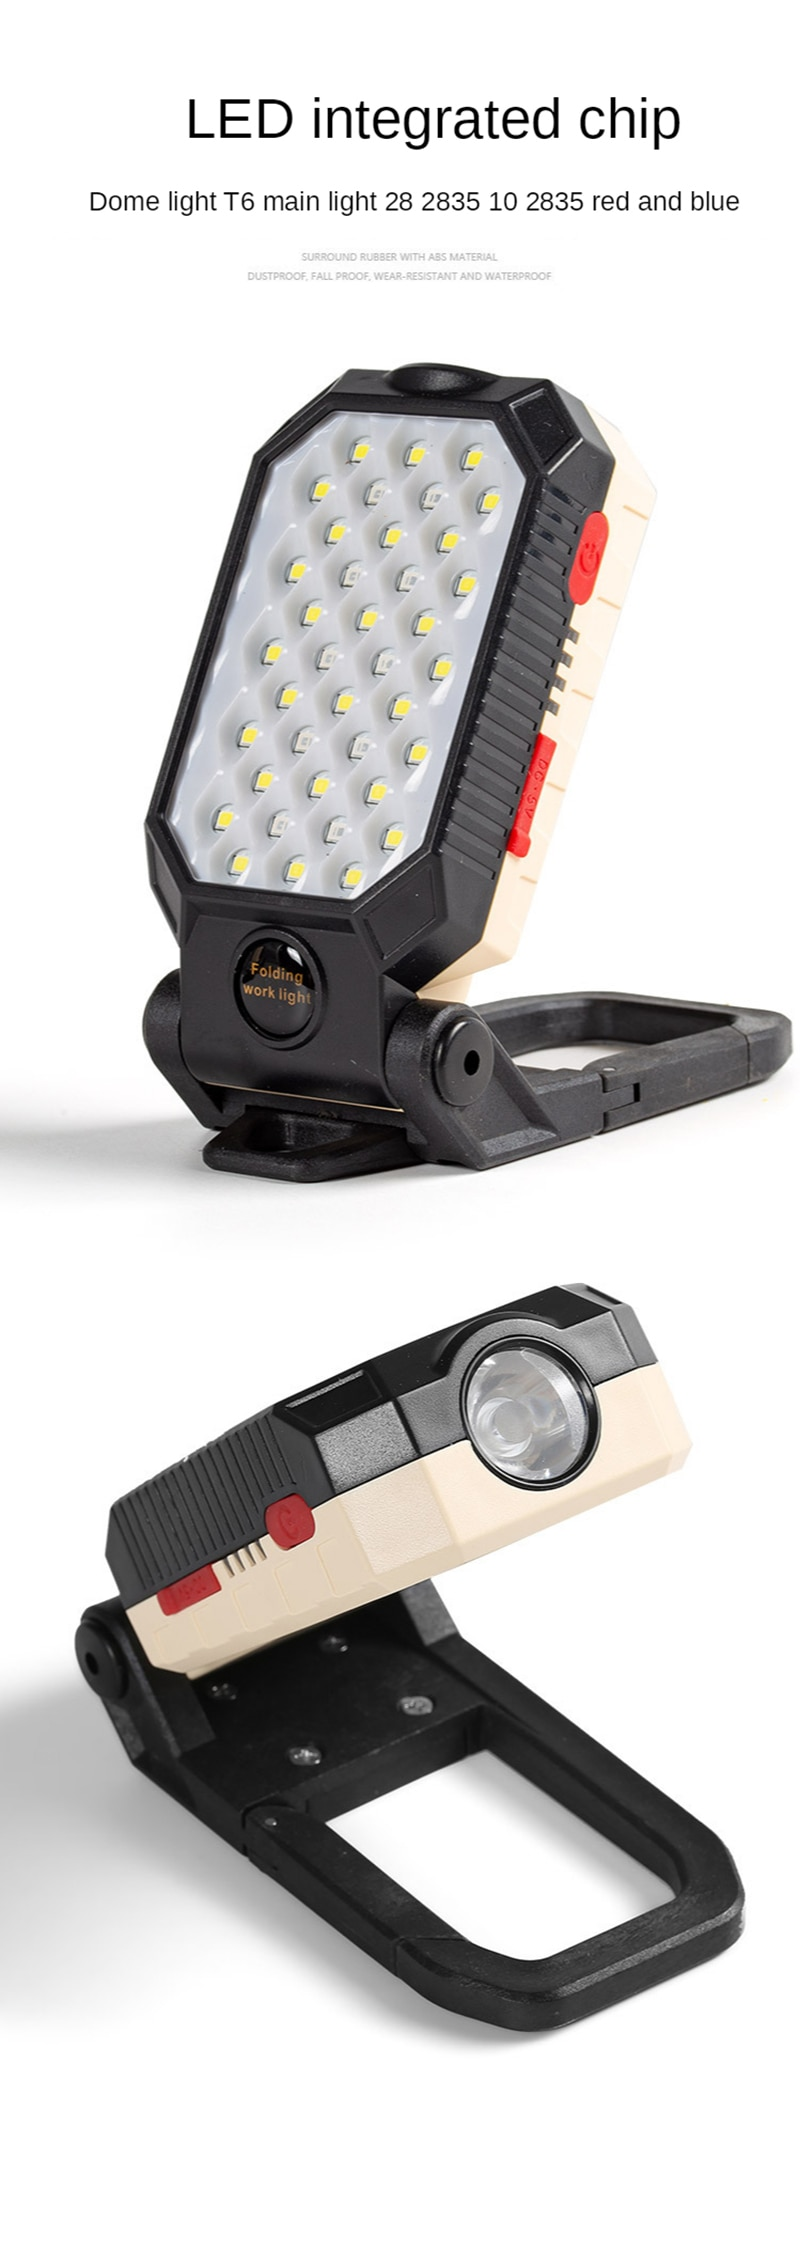 H95ef3acc3b484fc19781b24dc3f7884fH - ZHIYU LED COB Rechargeable Magnetic Work Light Portable Flashlight Waterproof Camping Lantern Magnet Design with Power Display